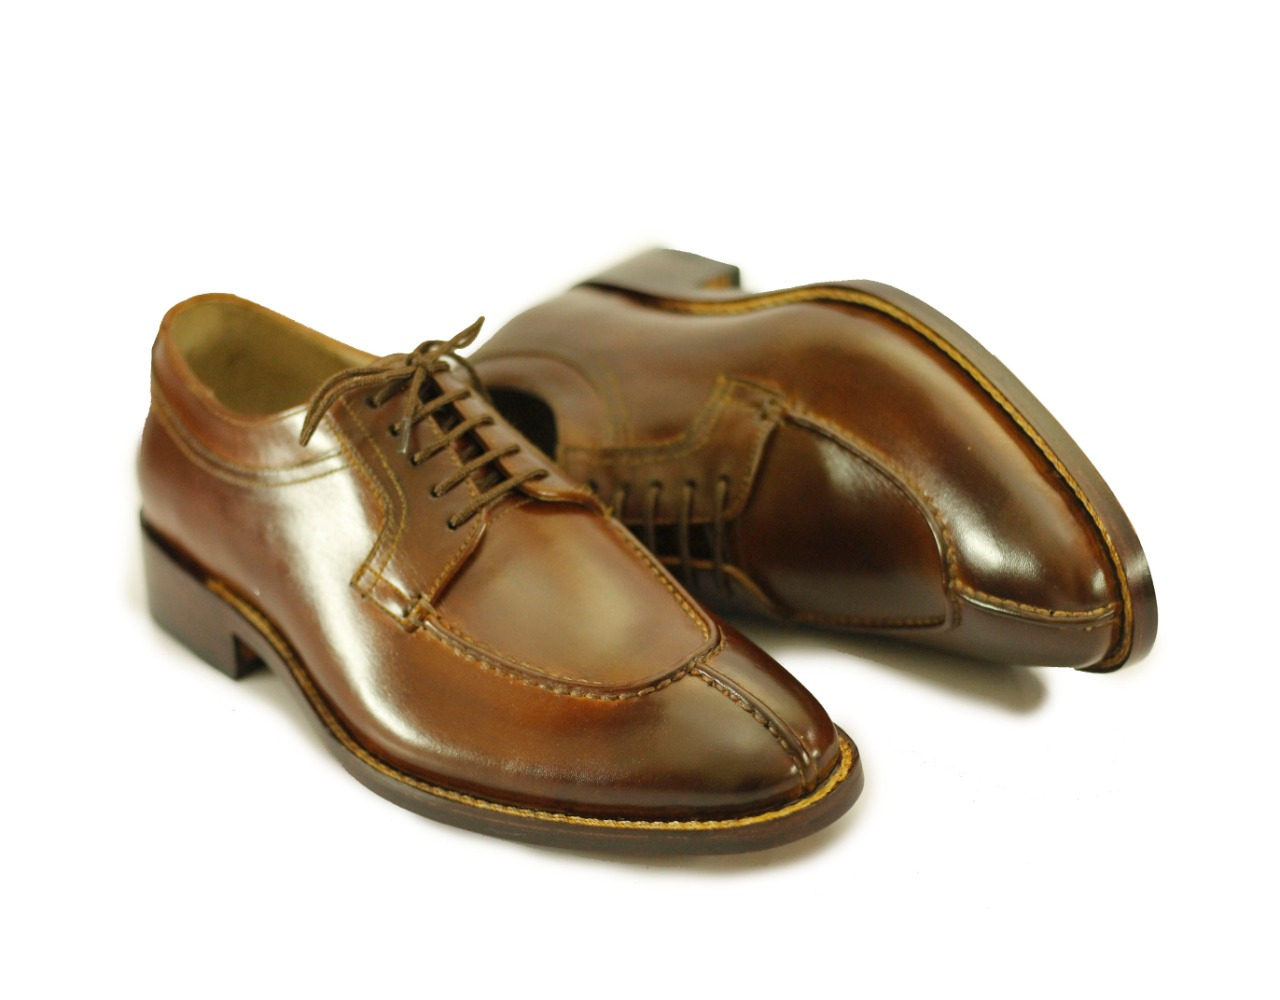 Men's Handmade Brown Split Toe Leather Lace Up Shoes For Men's